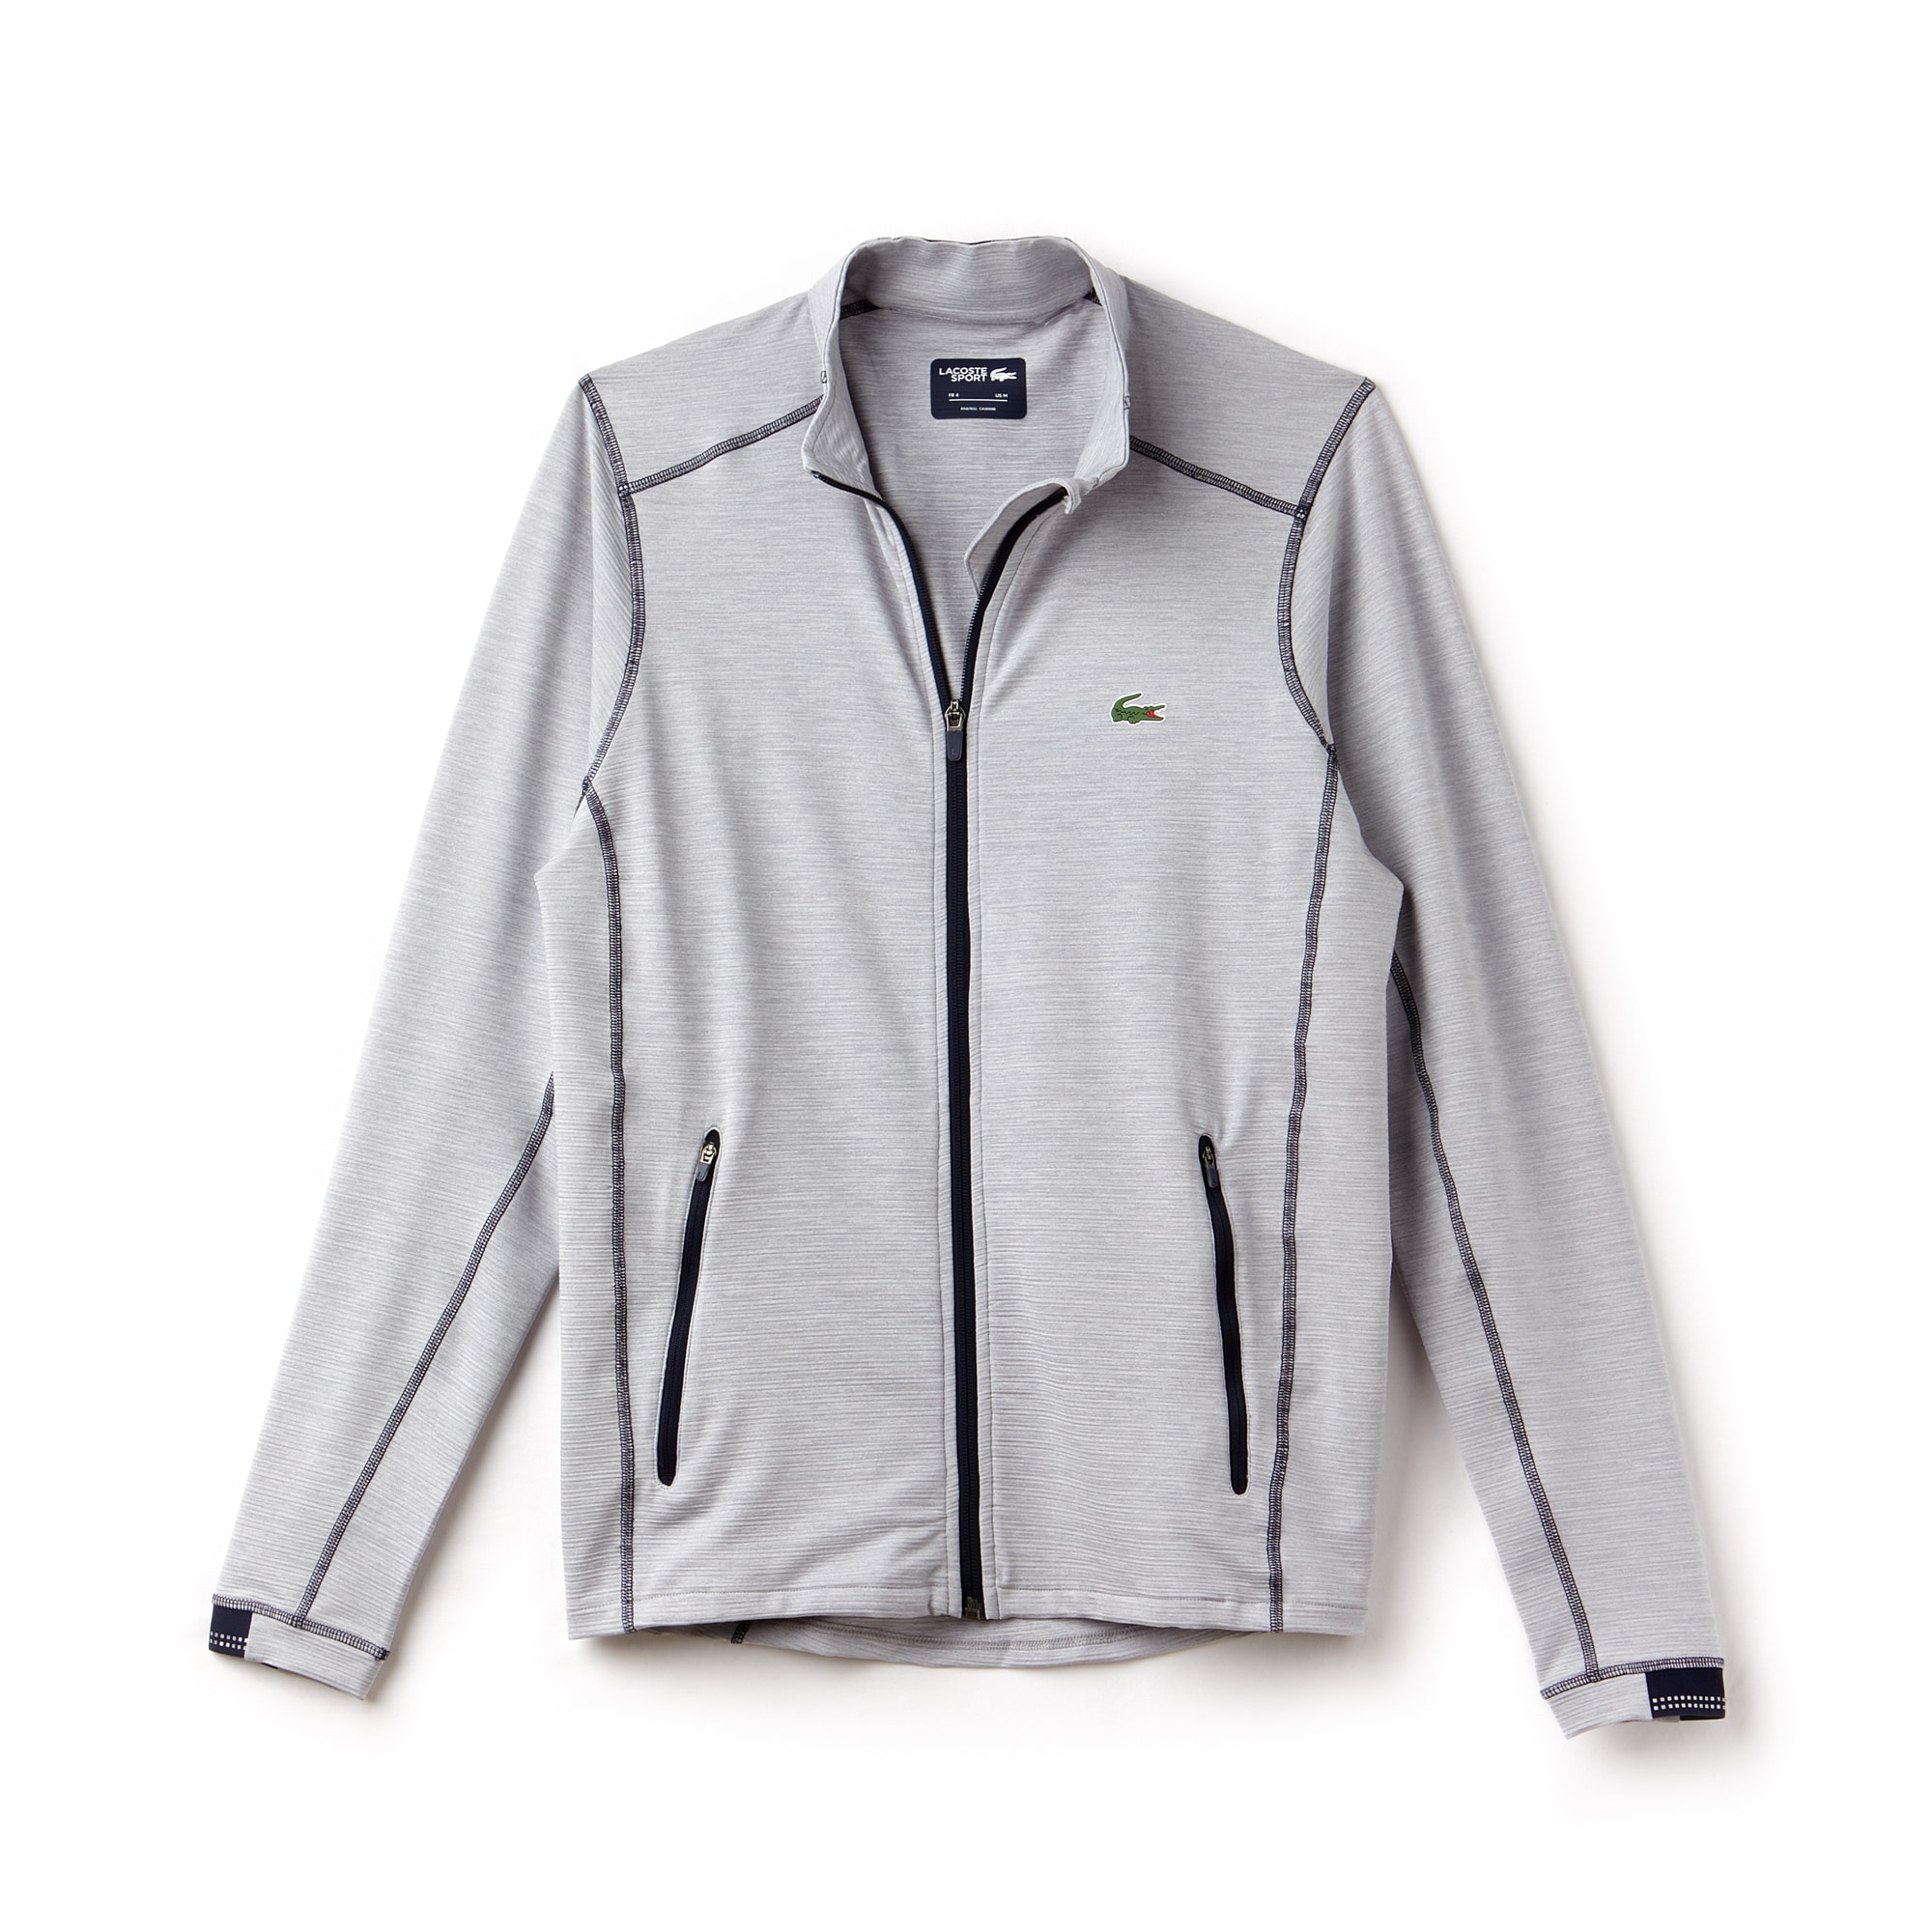 Men's SPORT Midlayer Golf Sweatshirt